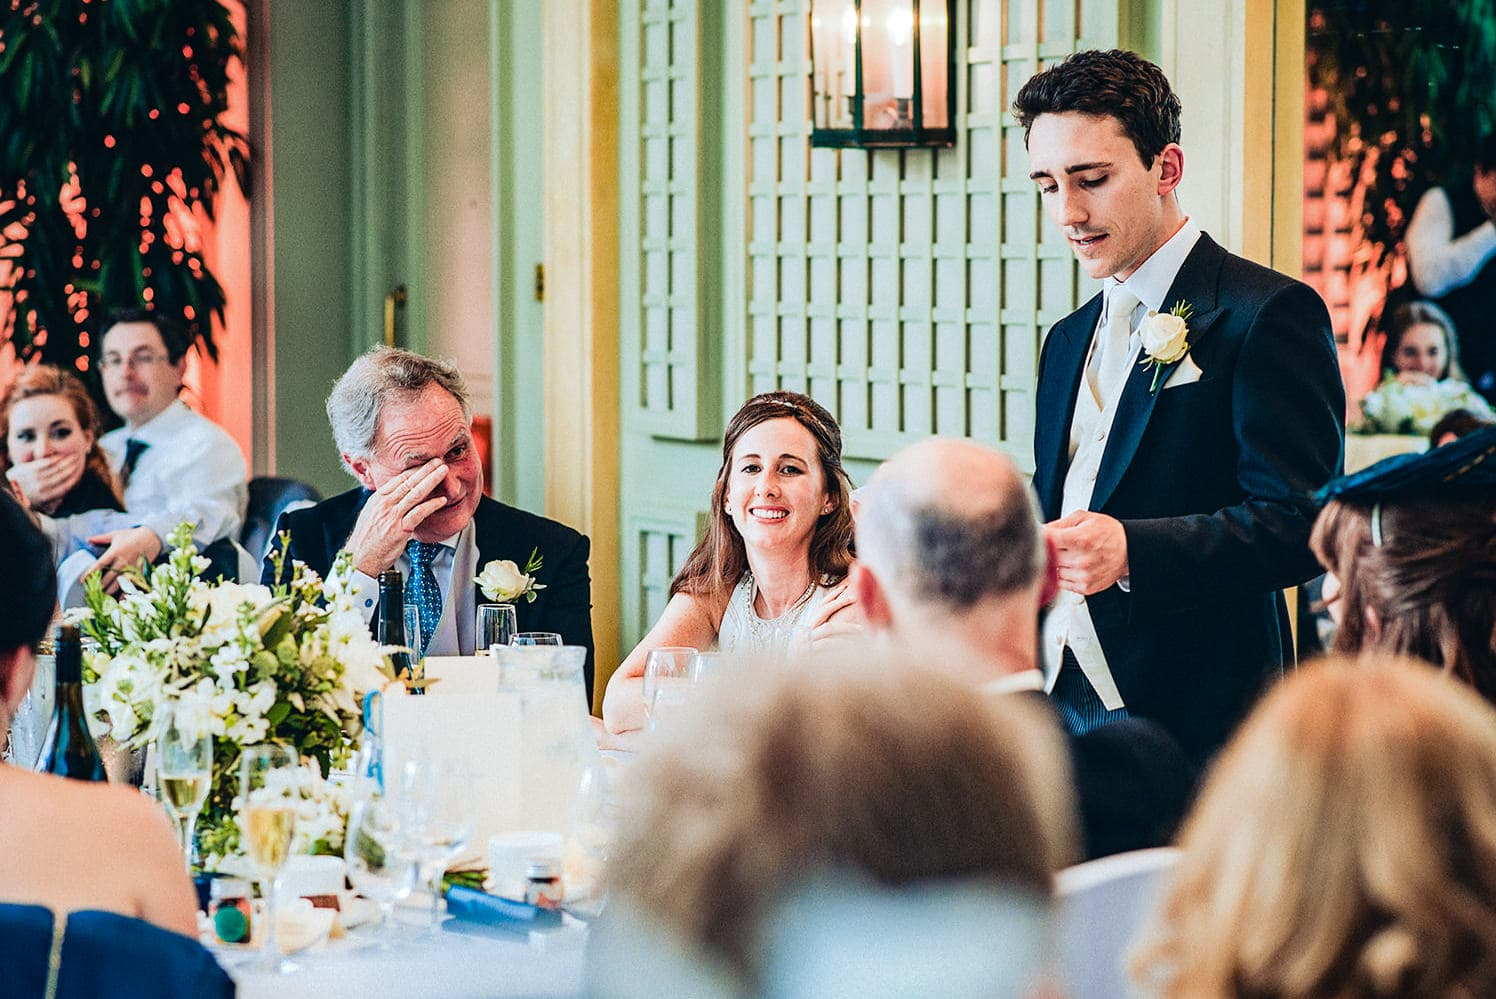 Father of the bride wipes a tear at the groom's speech in the Hurlingham Club Terrace room